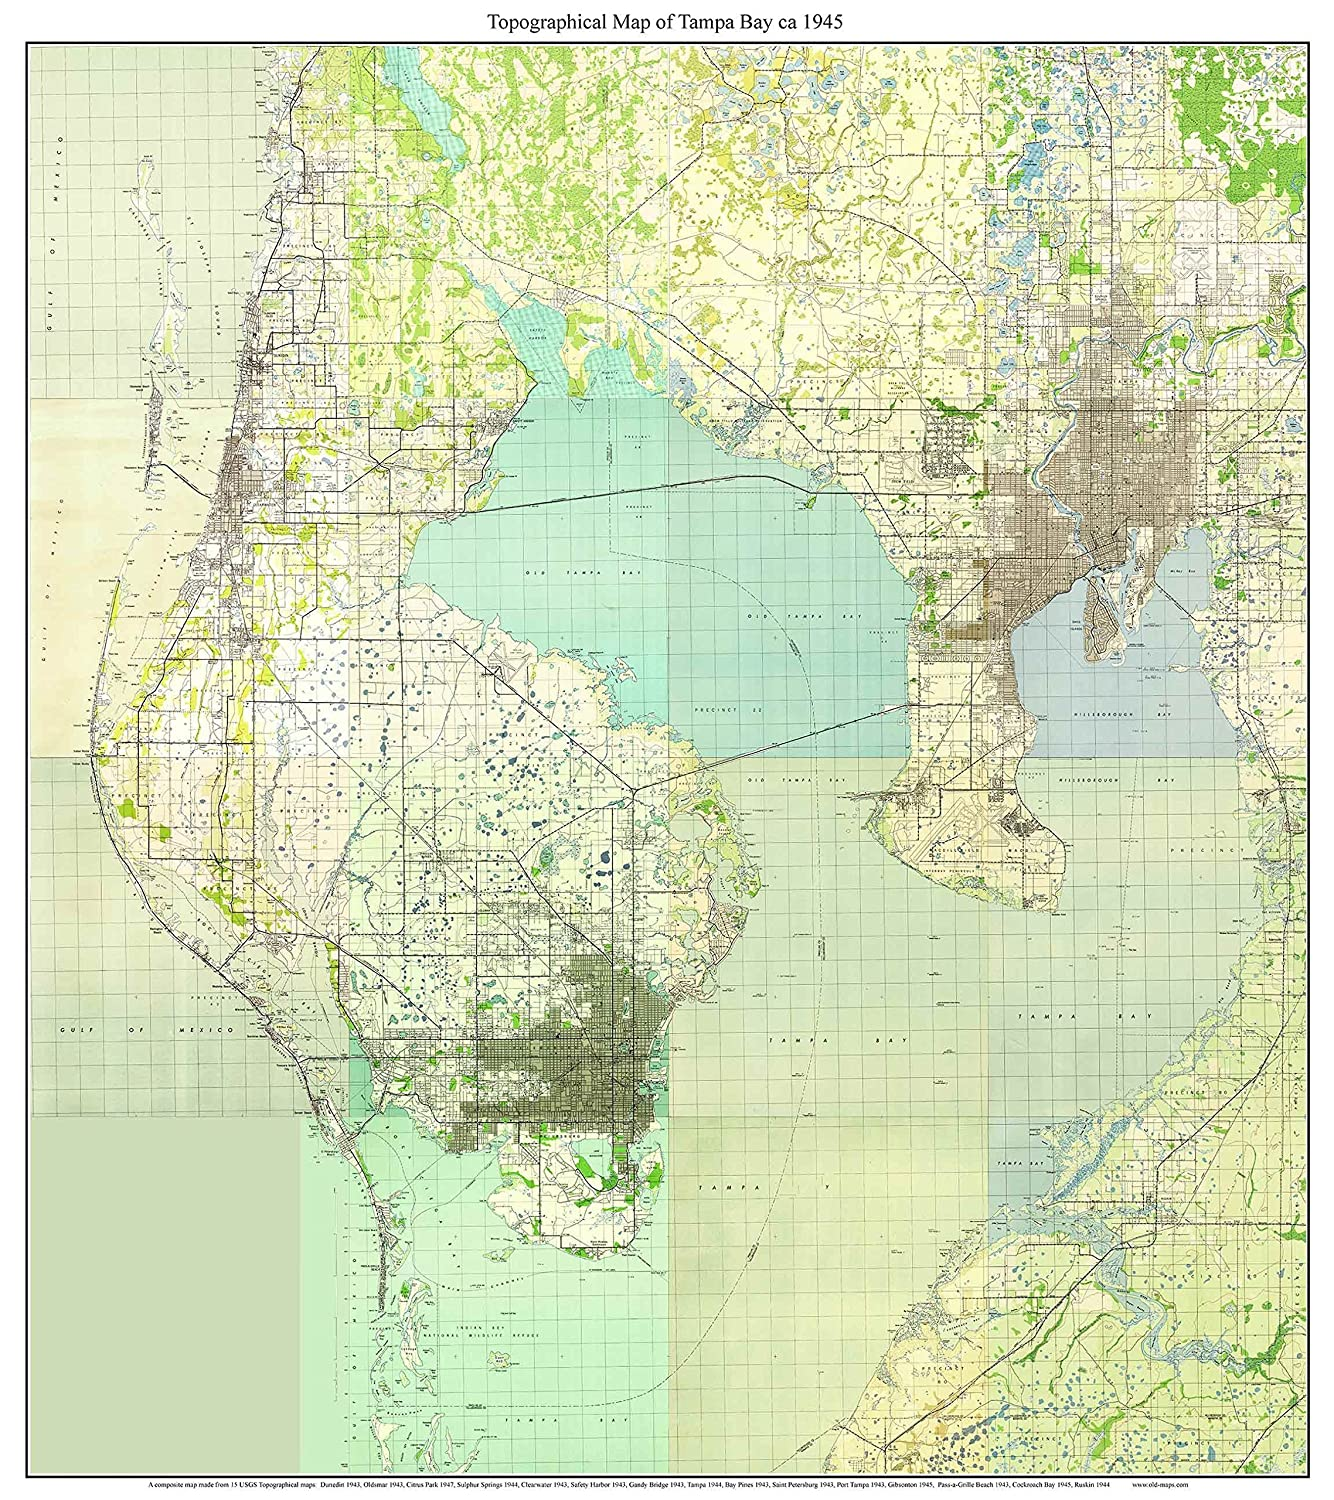 Amazon.com: Tampa Bay, Florida 1945 Topo Map - A Composite made from on